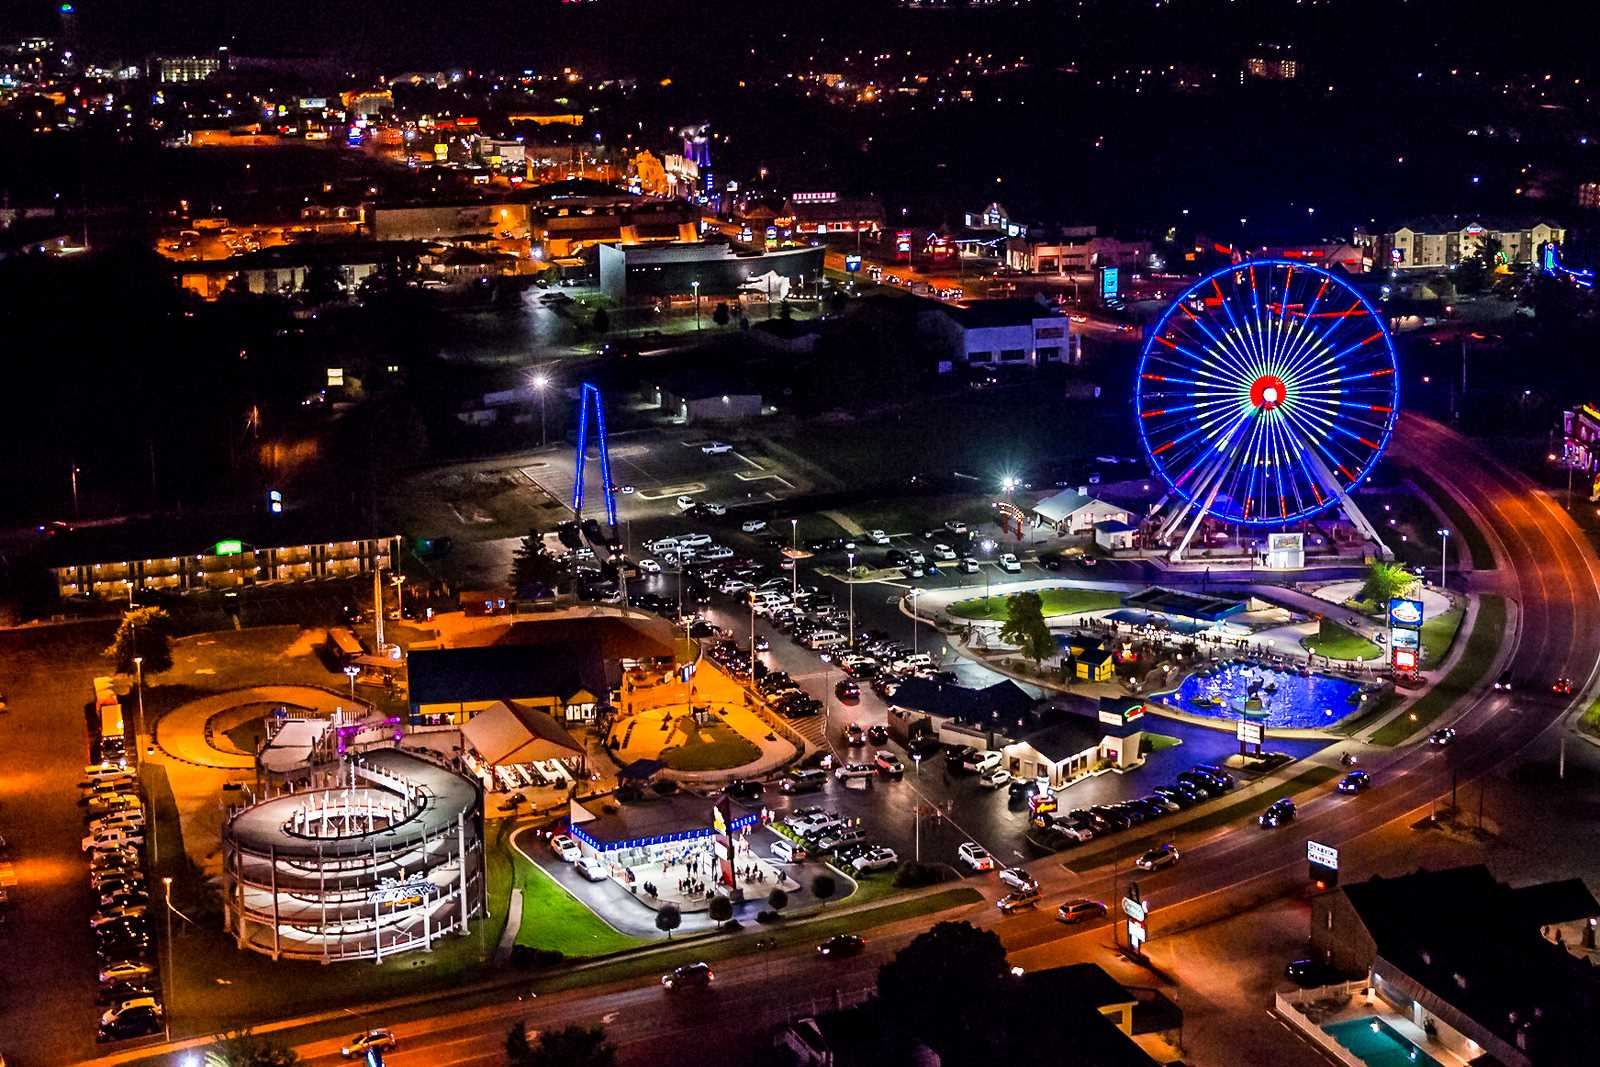 The new Branson Ferris Wheel came to use straight from Chica